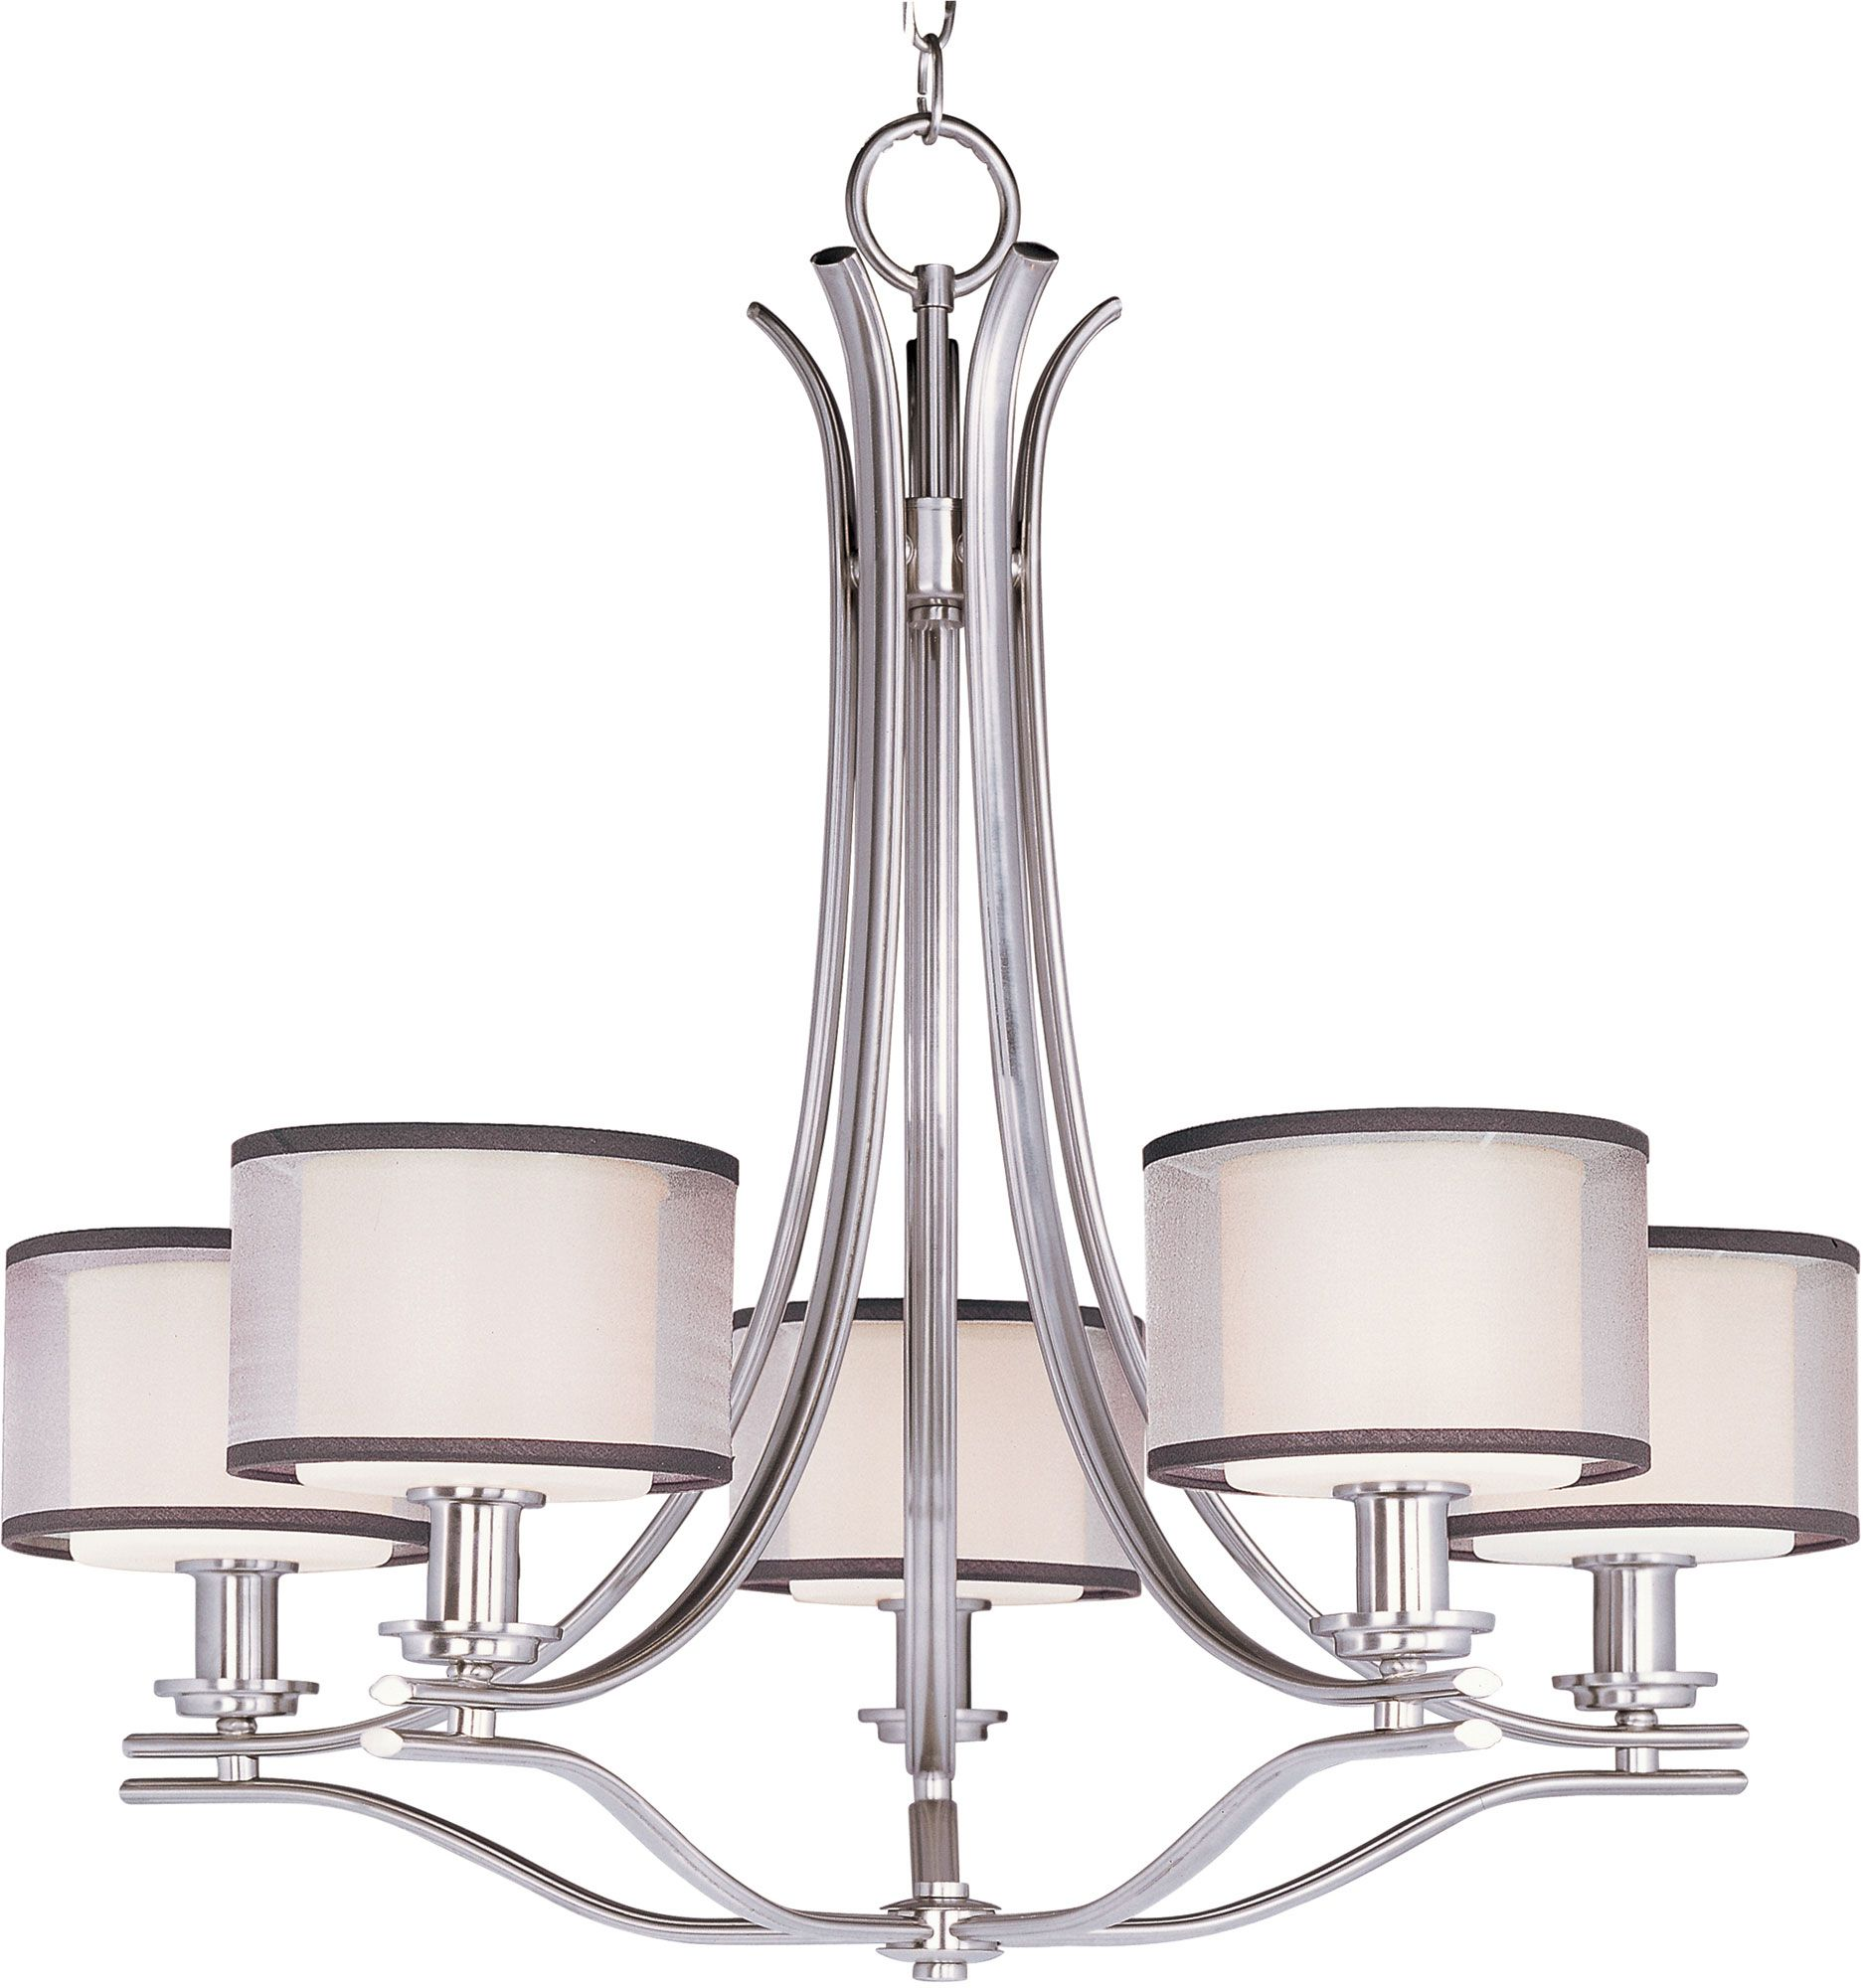 Orion Chandelier | Maxim Lighting at Lightology | Barnutopia ...